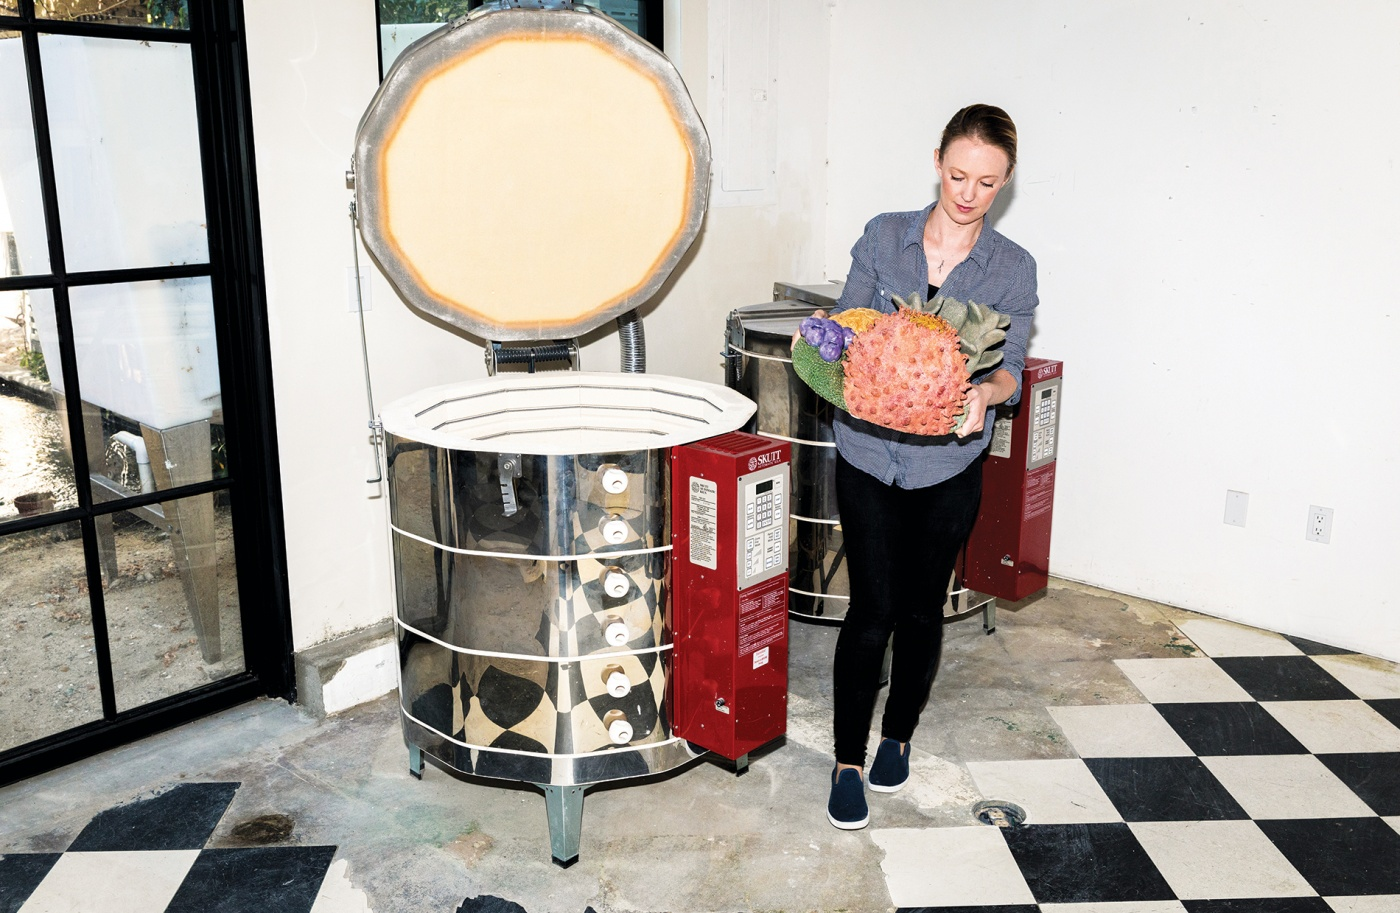 Courtney Mattisson removes a ceramic piece from the kiln in her studio